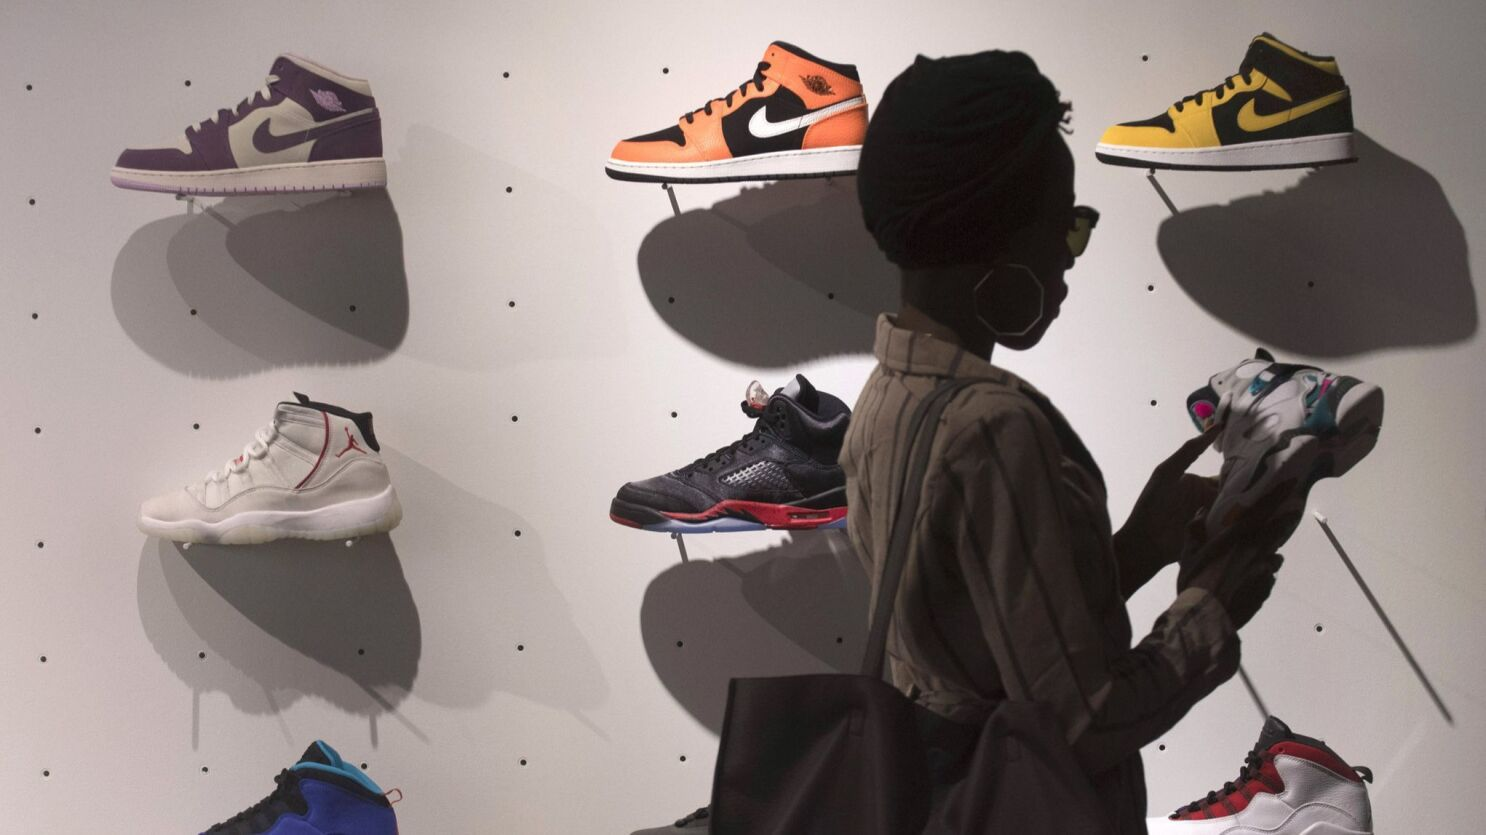 Those Nikes — buy, sell or hold? Sneakers are now assets